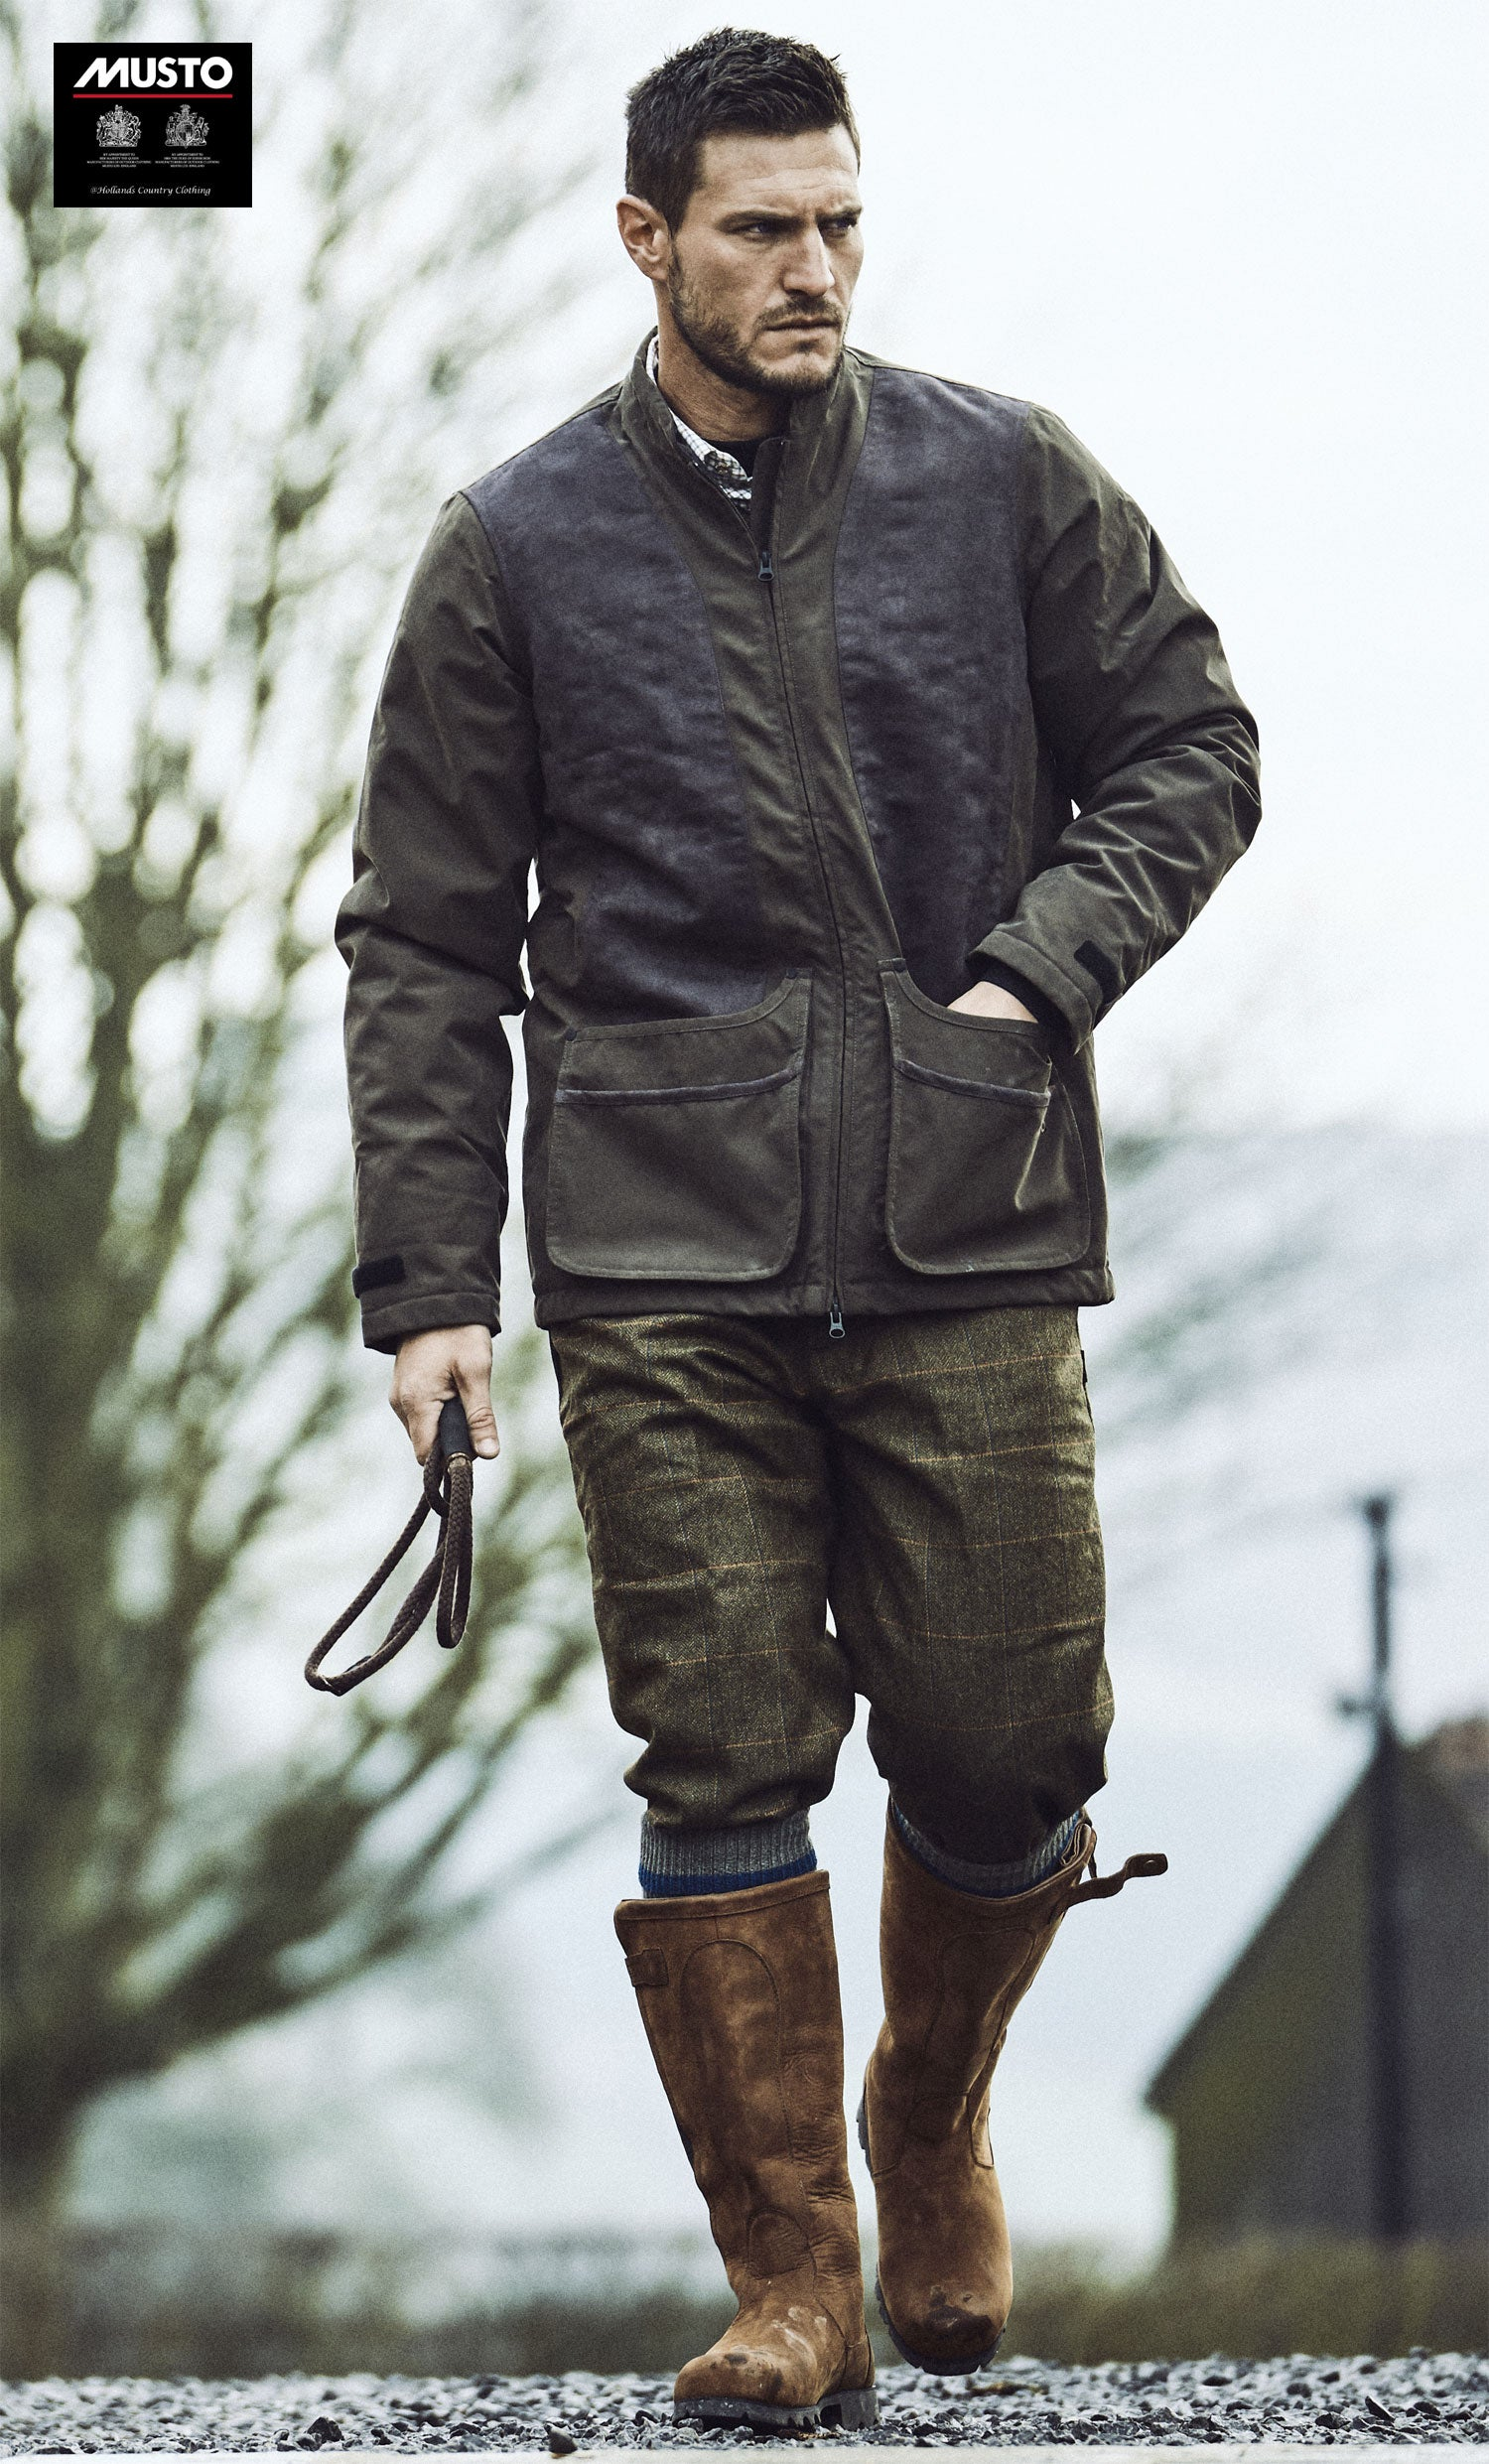 Montrose Waterproof Jacket by Musto